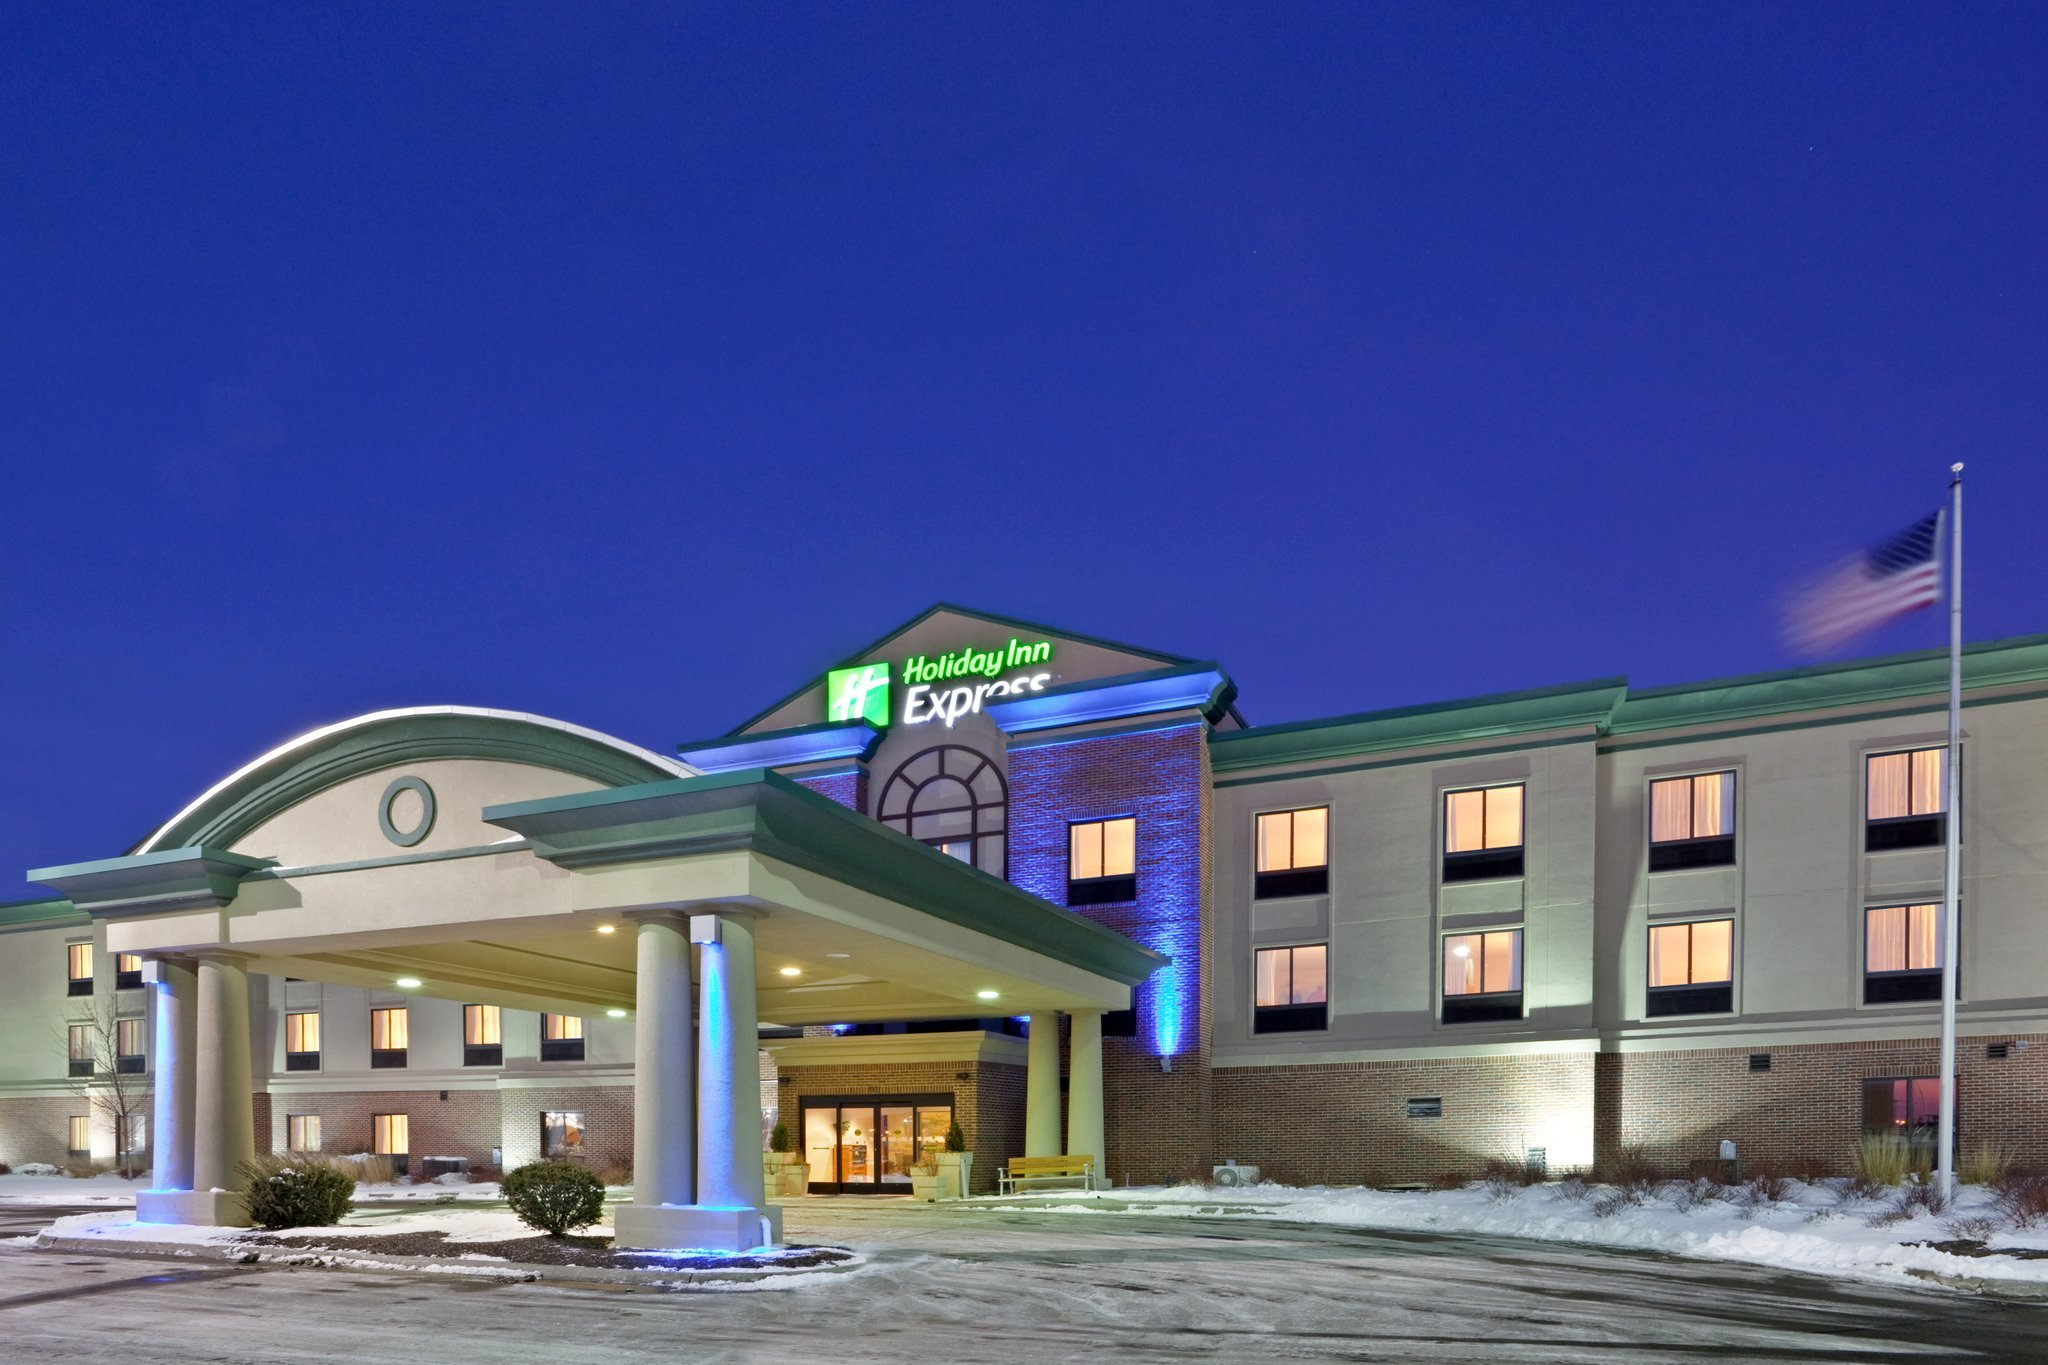 Holiday Inn Express Village West